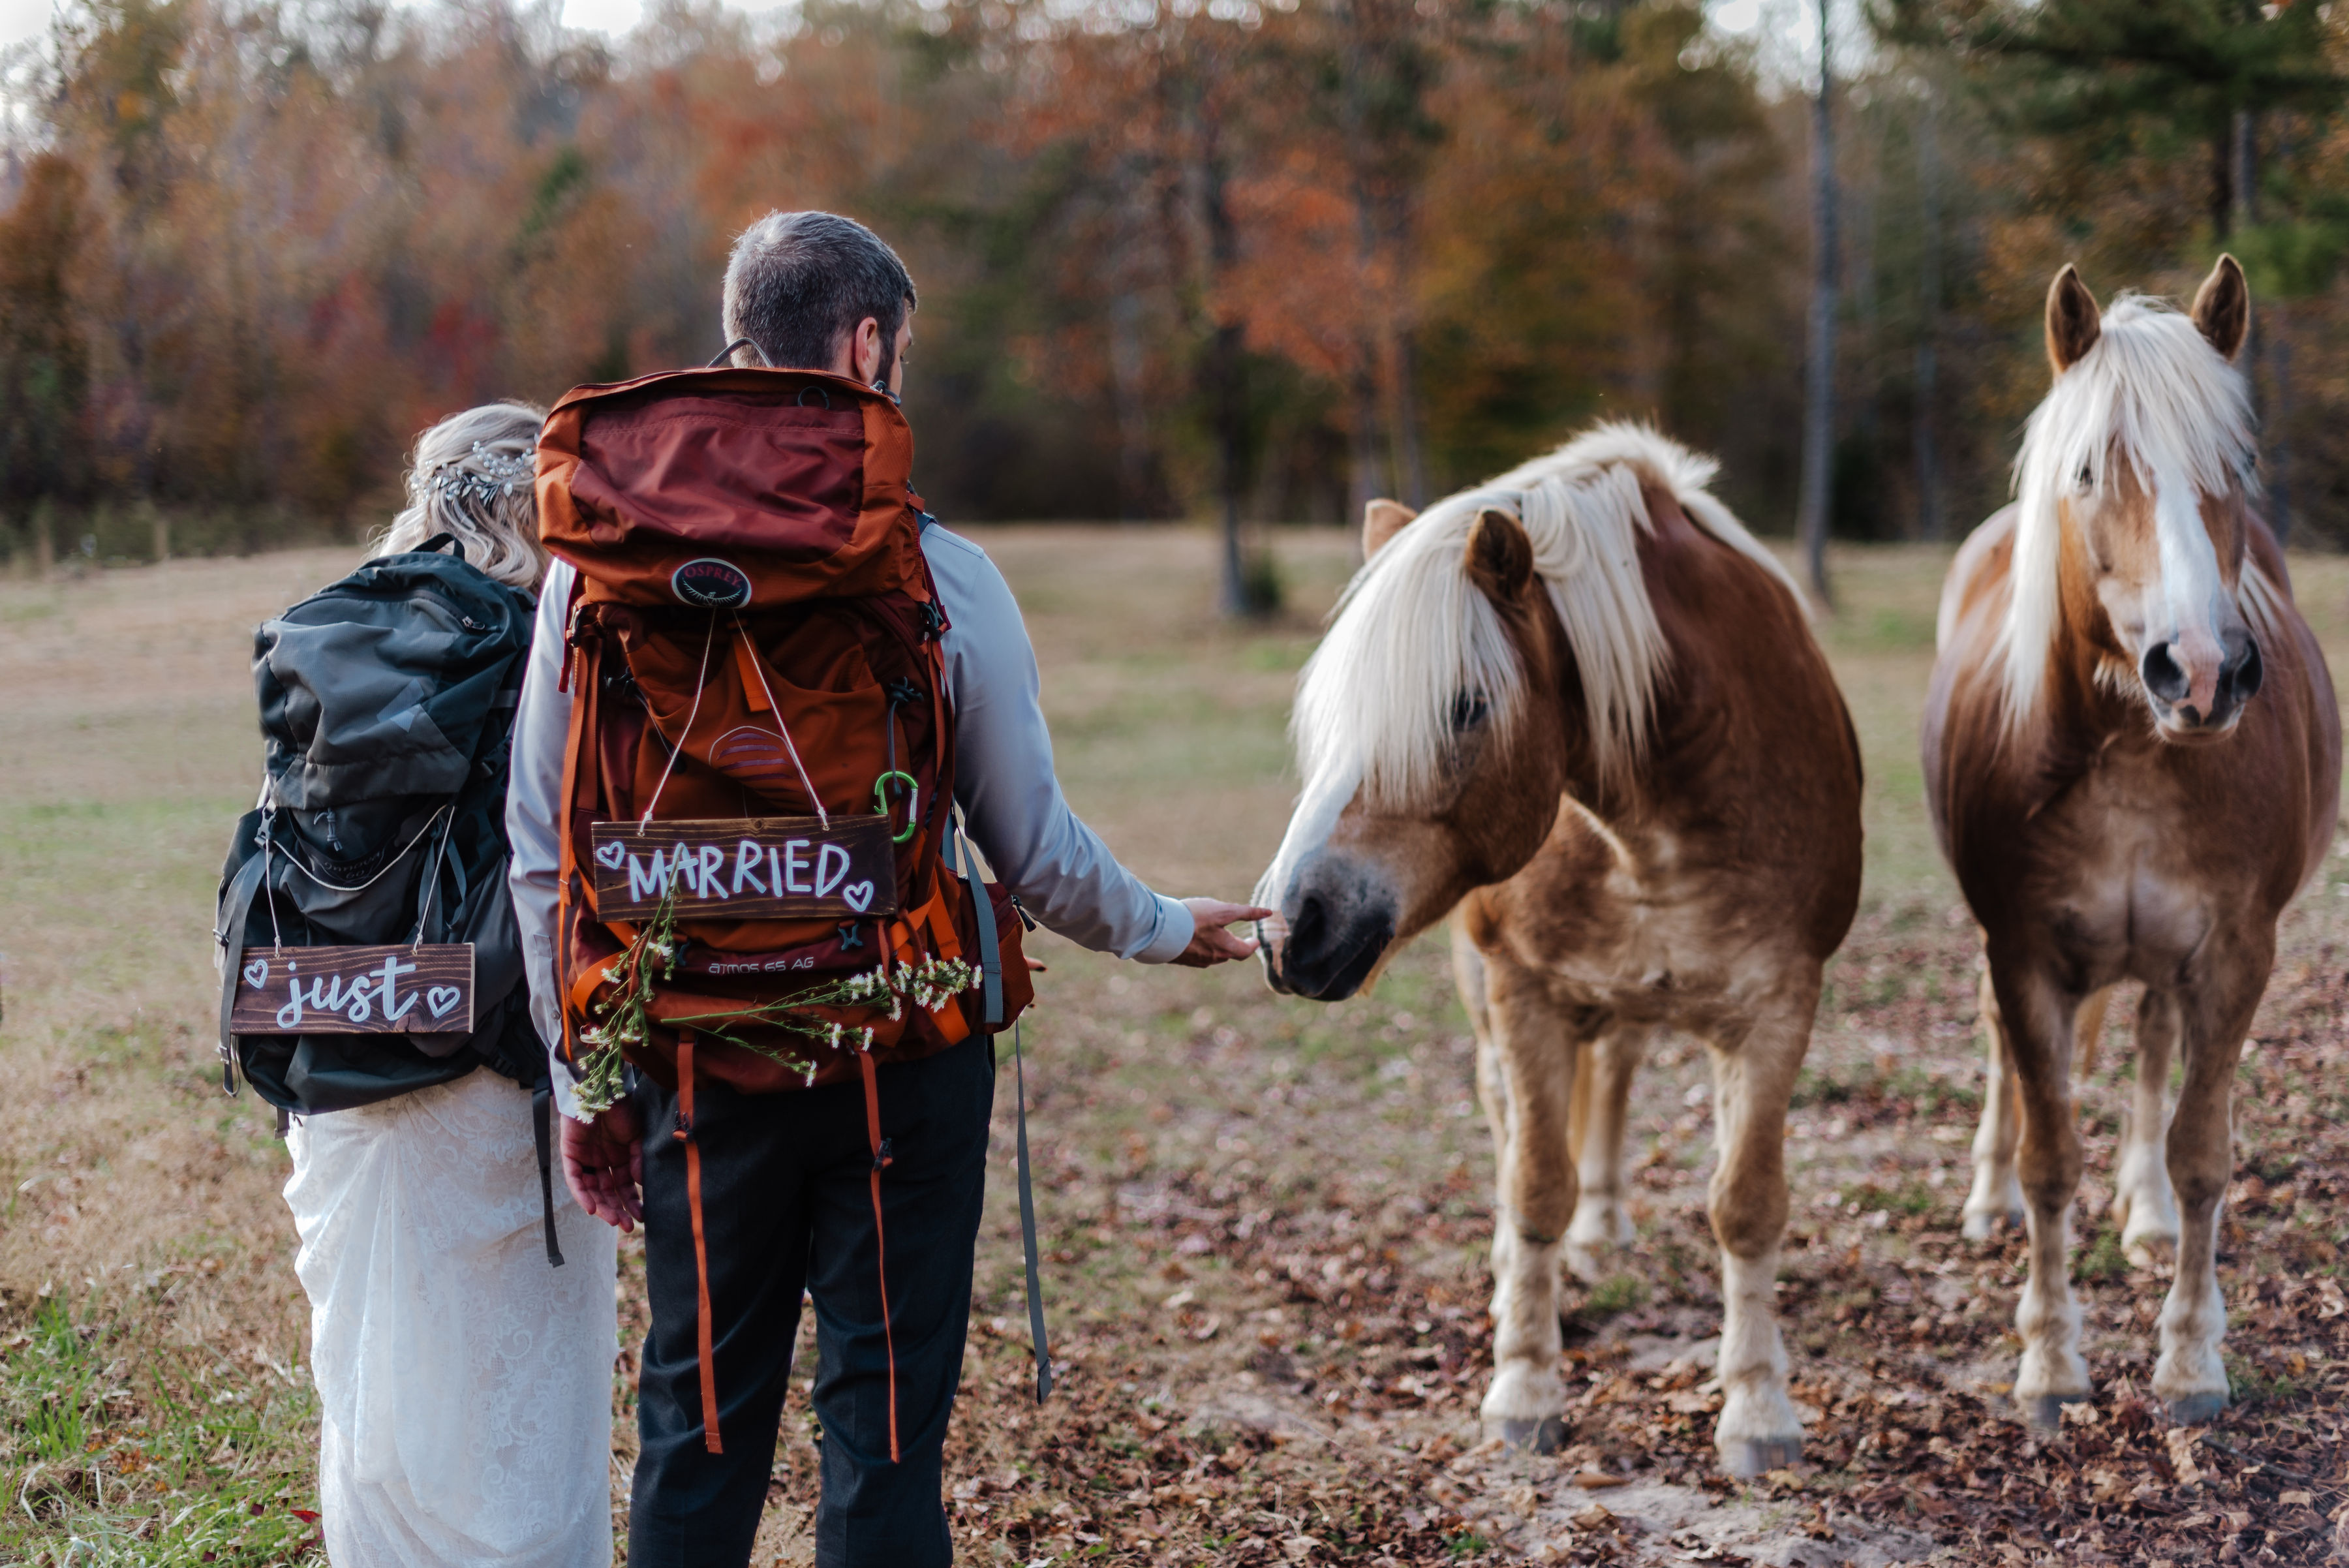 horse farm wedding venue with camping backpacks for an intimate mountain elopment